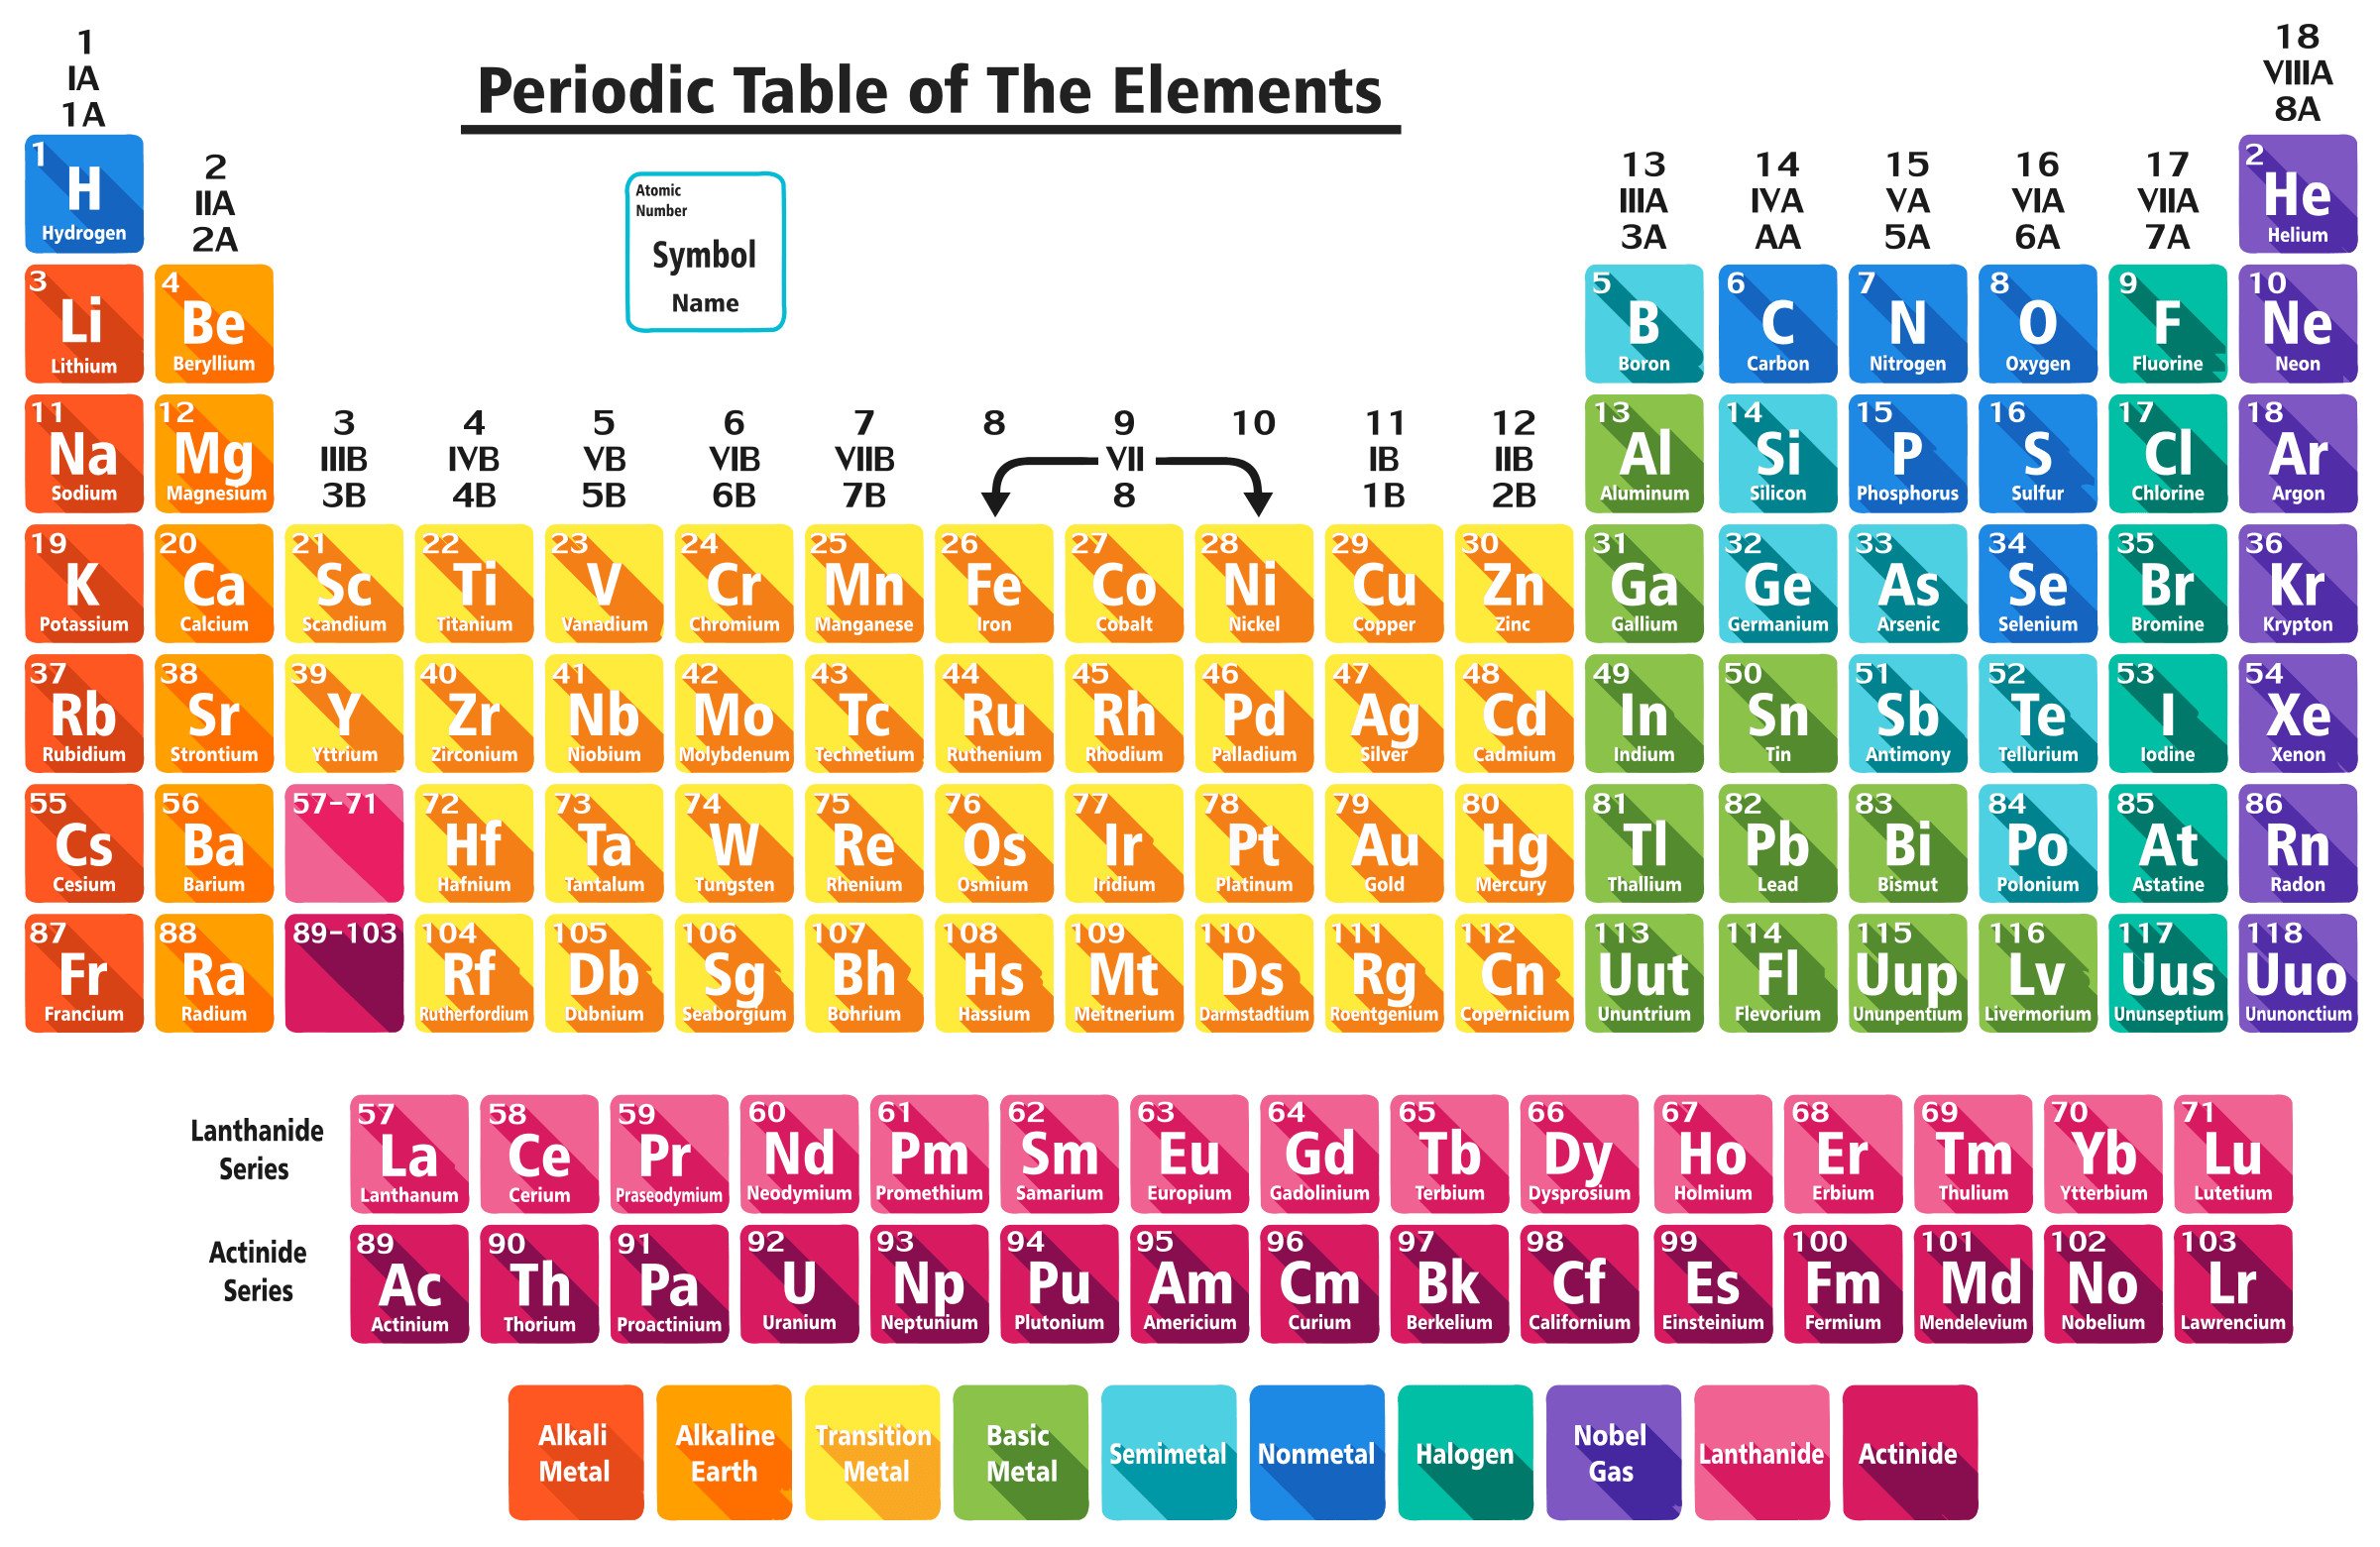 Periodic table ce images periodic table images periodic table yb image collections periodic table images periodic table ce image collections periodic table images gamestrikefo Image collections